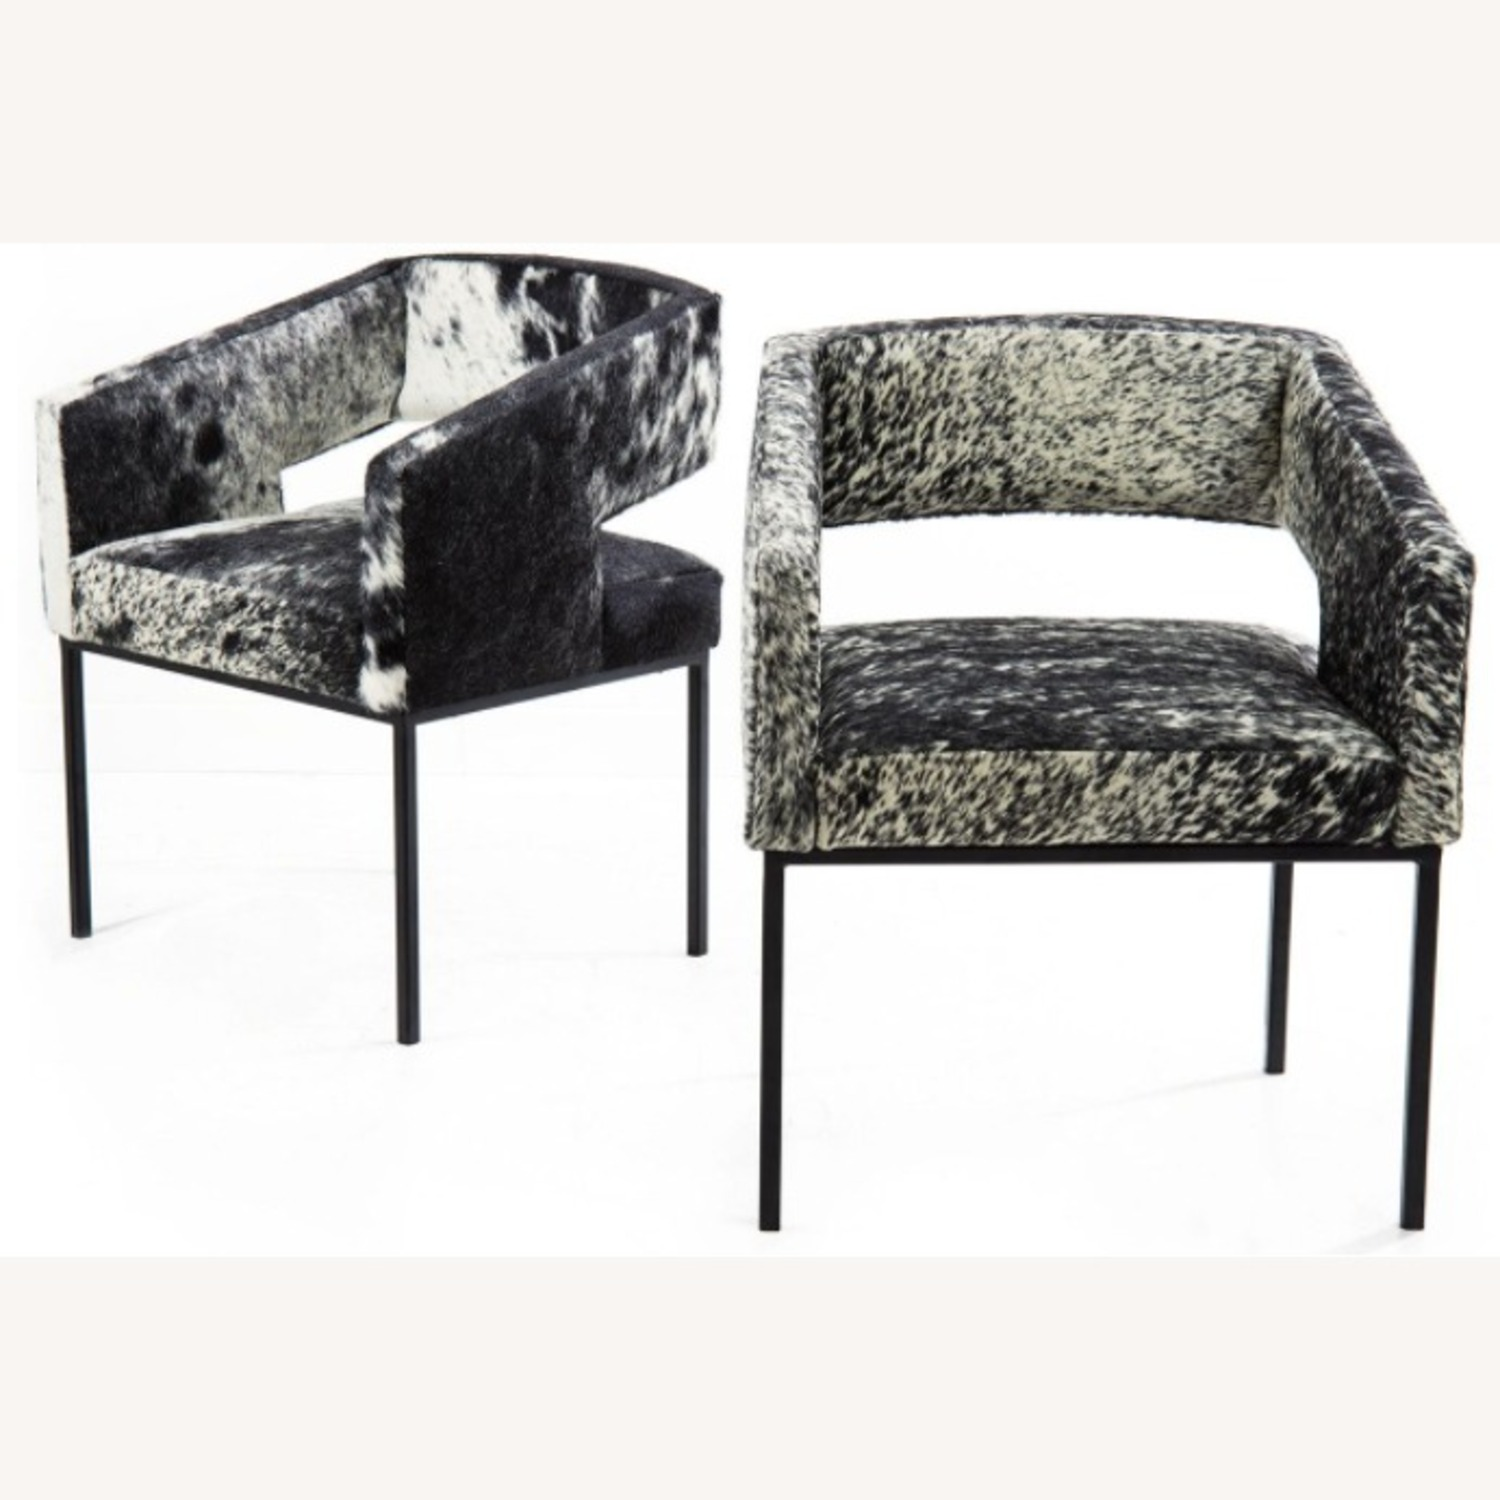 ModShop Open Back Chair in Cowhide - image-1